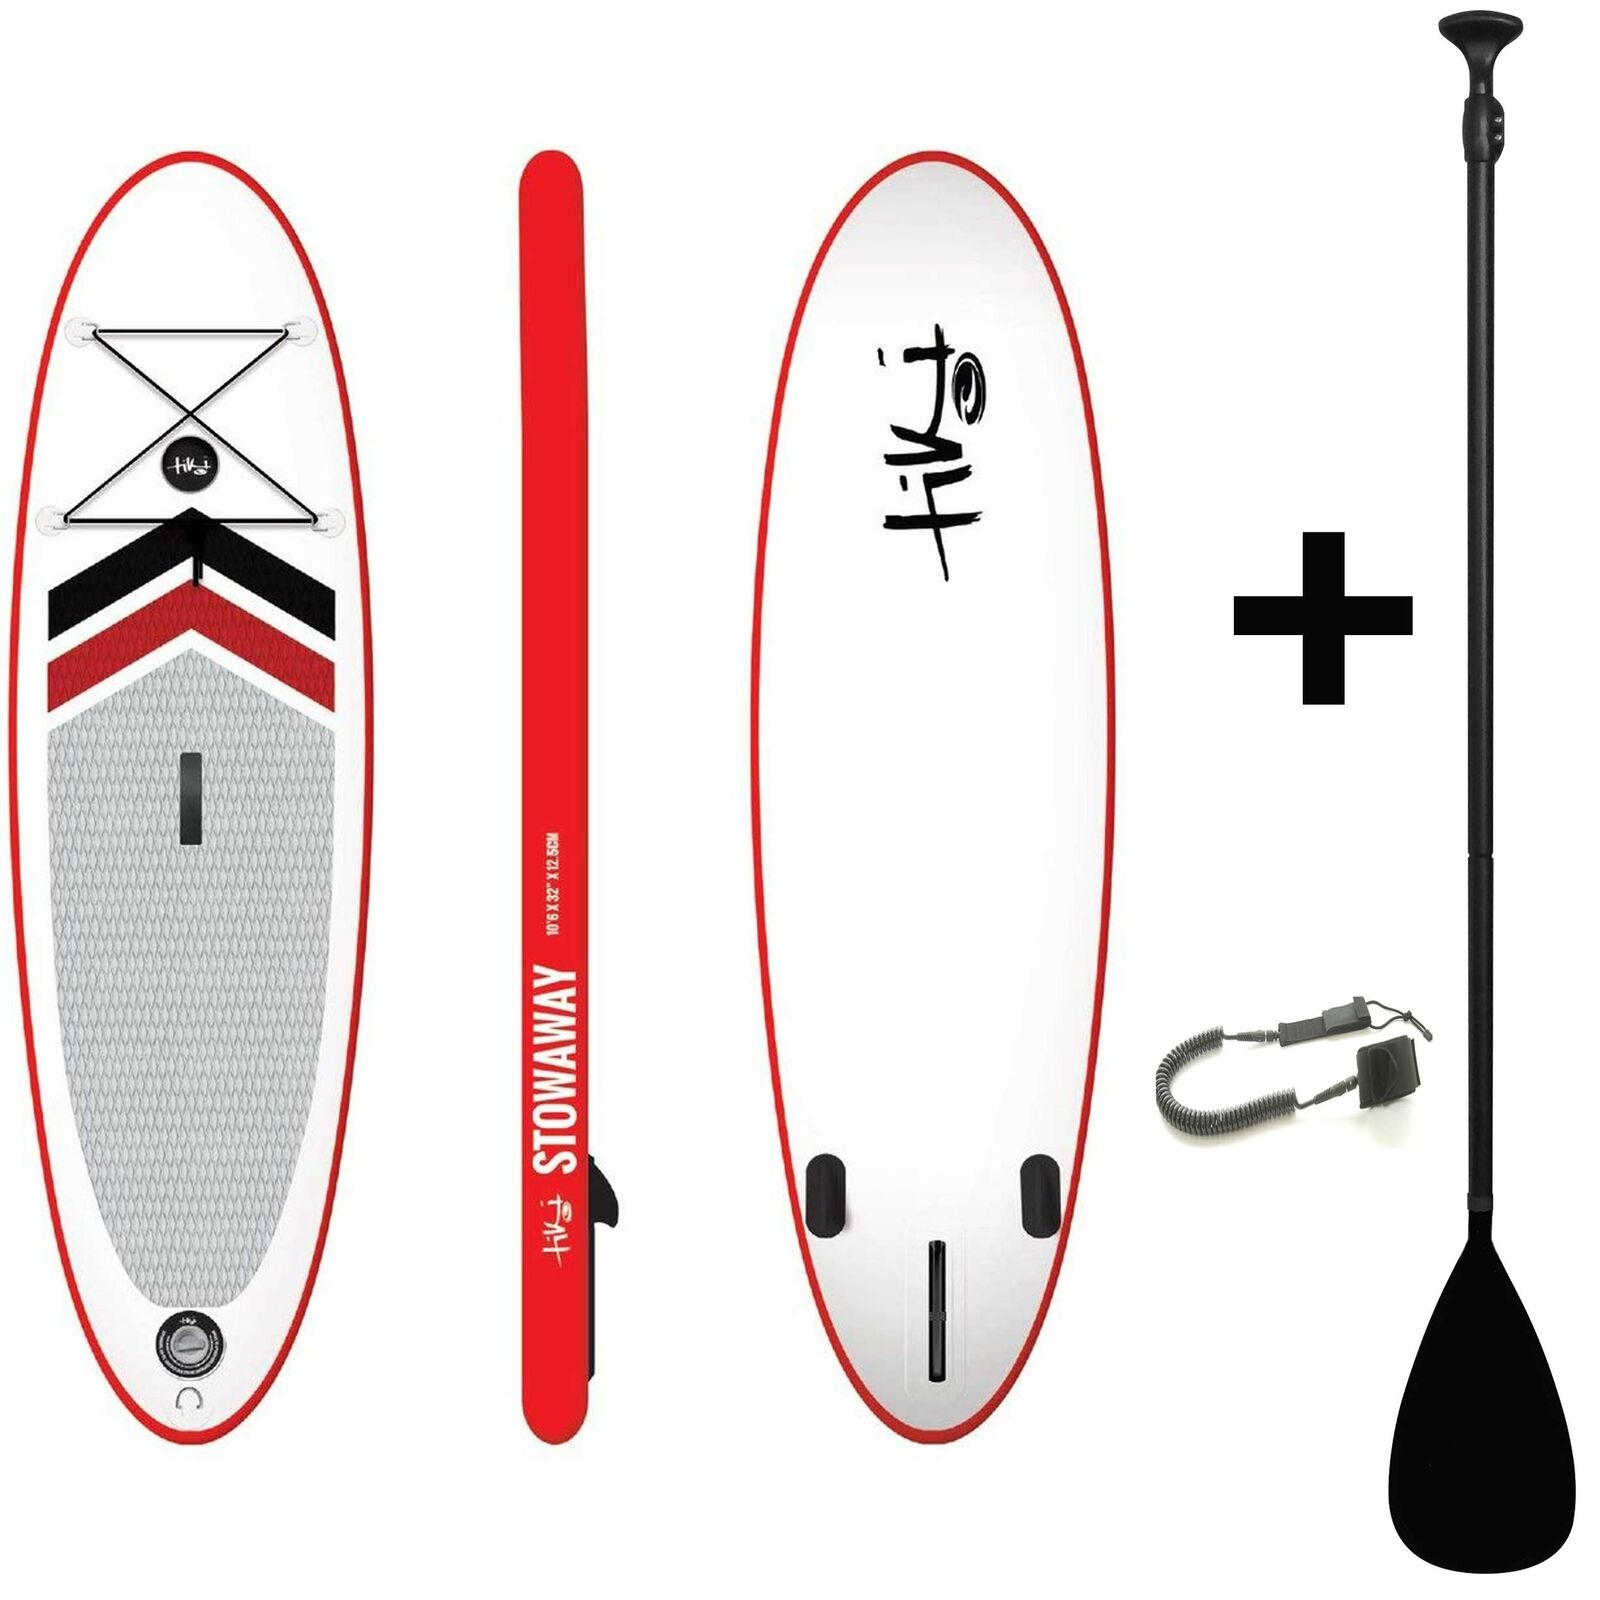 Tiki polizón 10ft 6 + 3Pce Negro Remo SUP inflables + Correa + tablero de Stand Up